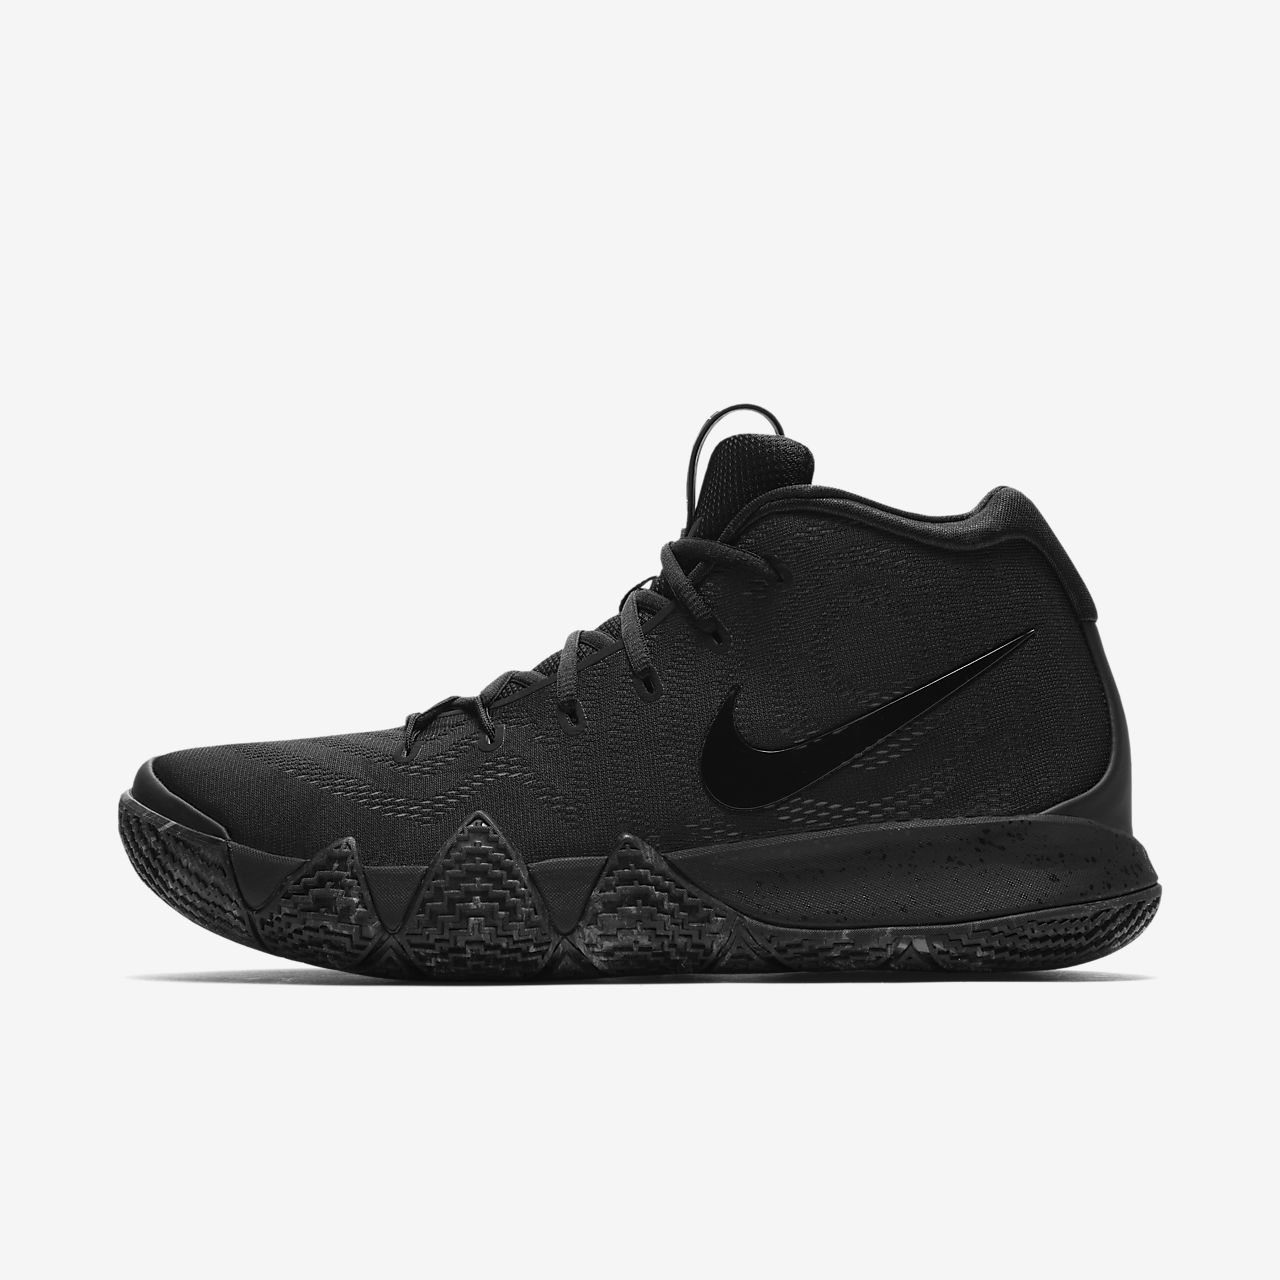 a76205e1eaa3 Low Resolution Kyrie 4 Basketball Shoe Kyrie 4 Basketball Shoe